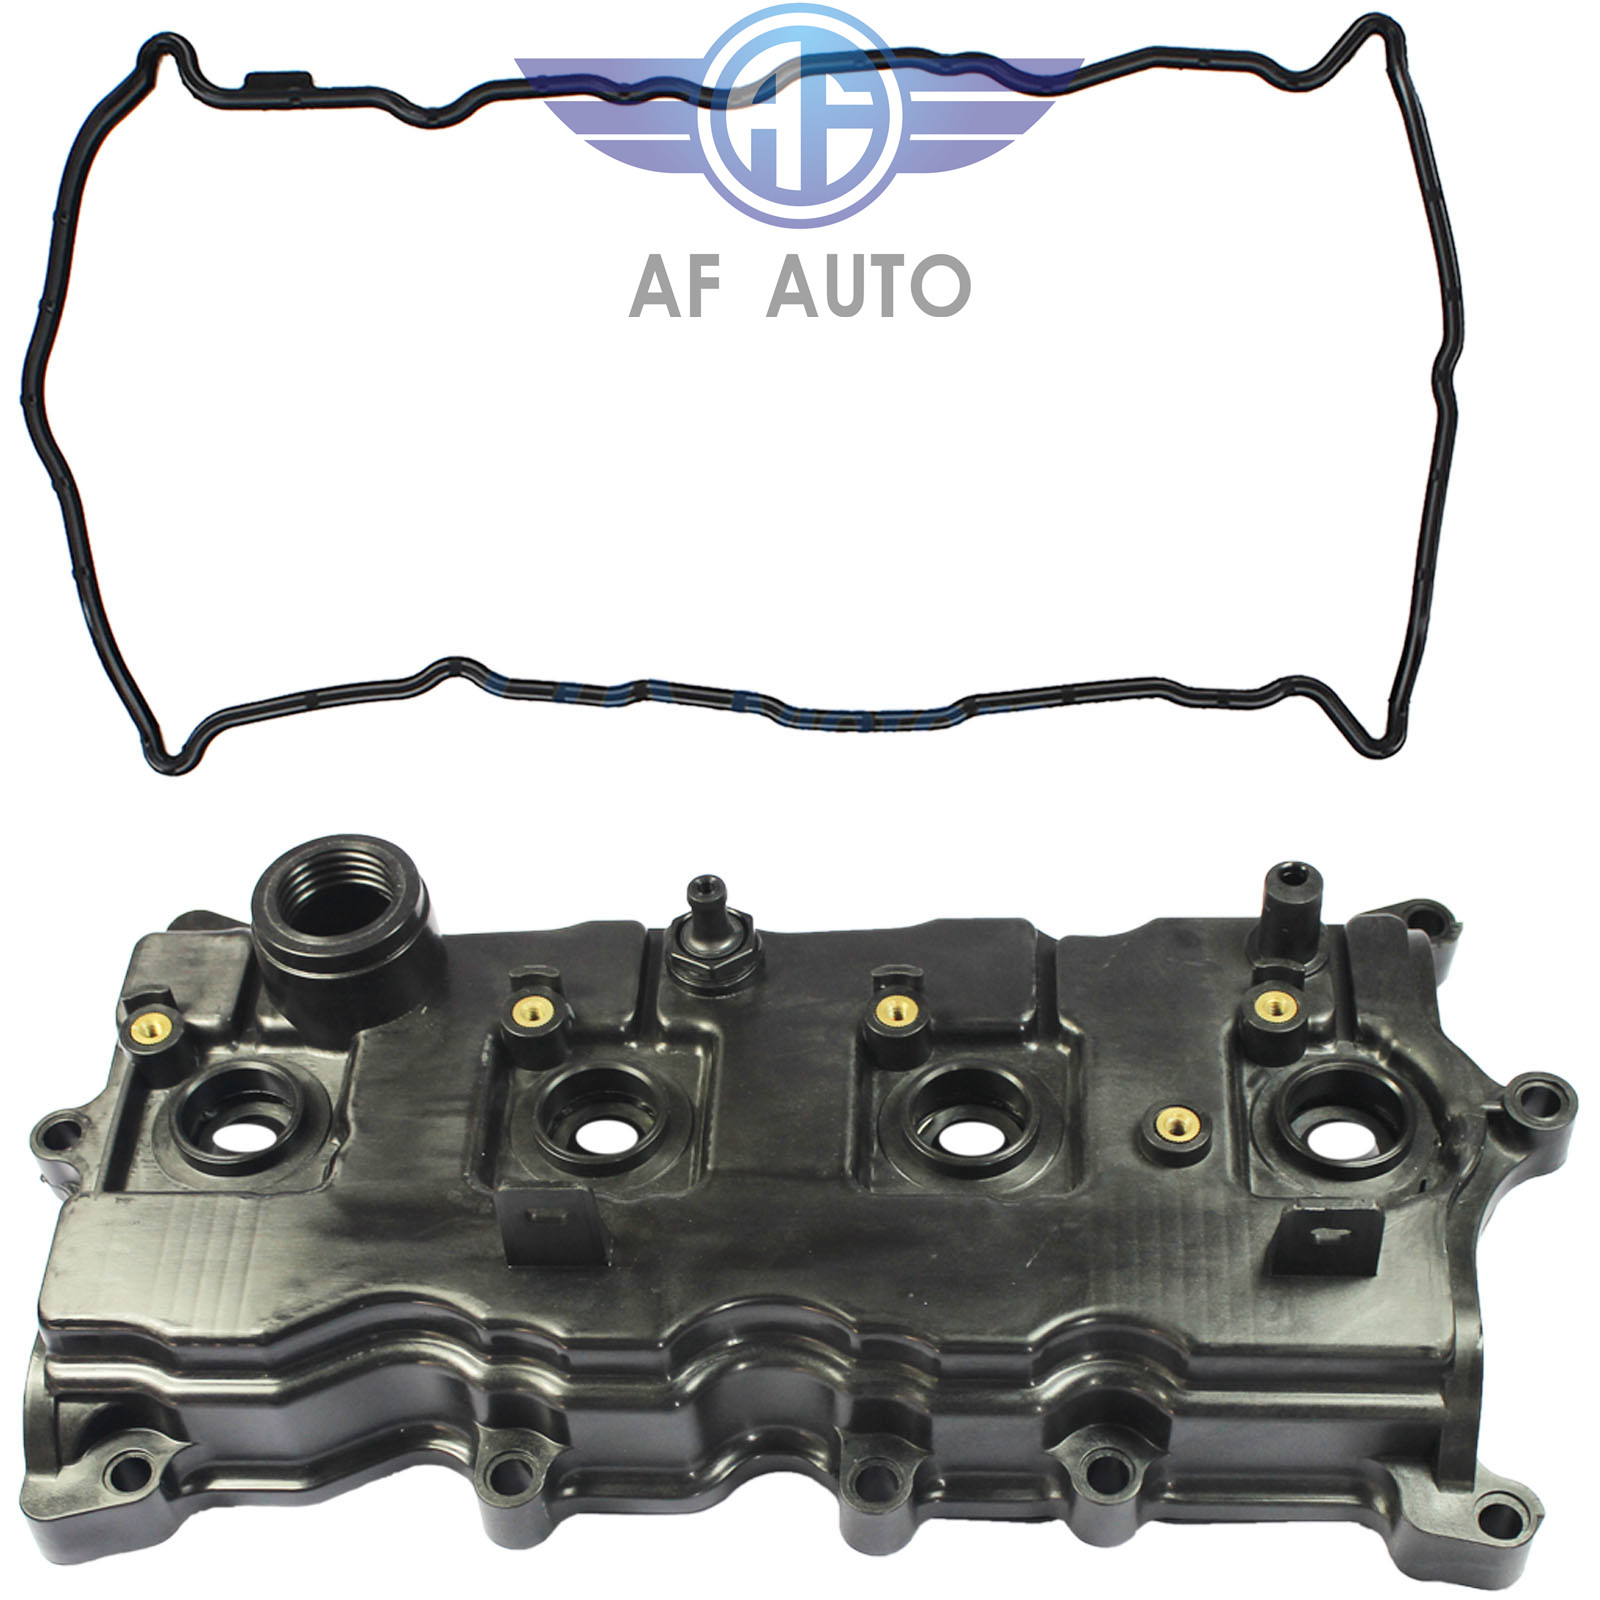 New Engine Valve Cover w// Gasket for 07-13 Nissan Altima Sentra SE-R 2.5L QR25DE